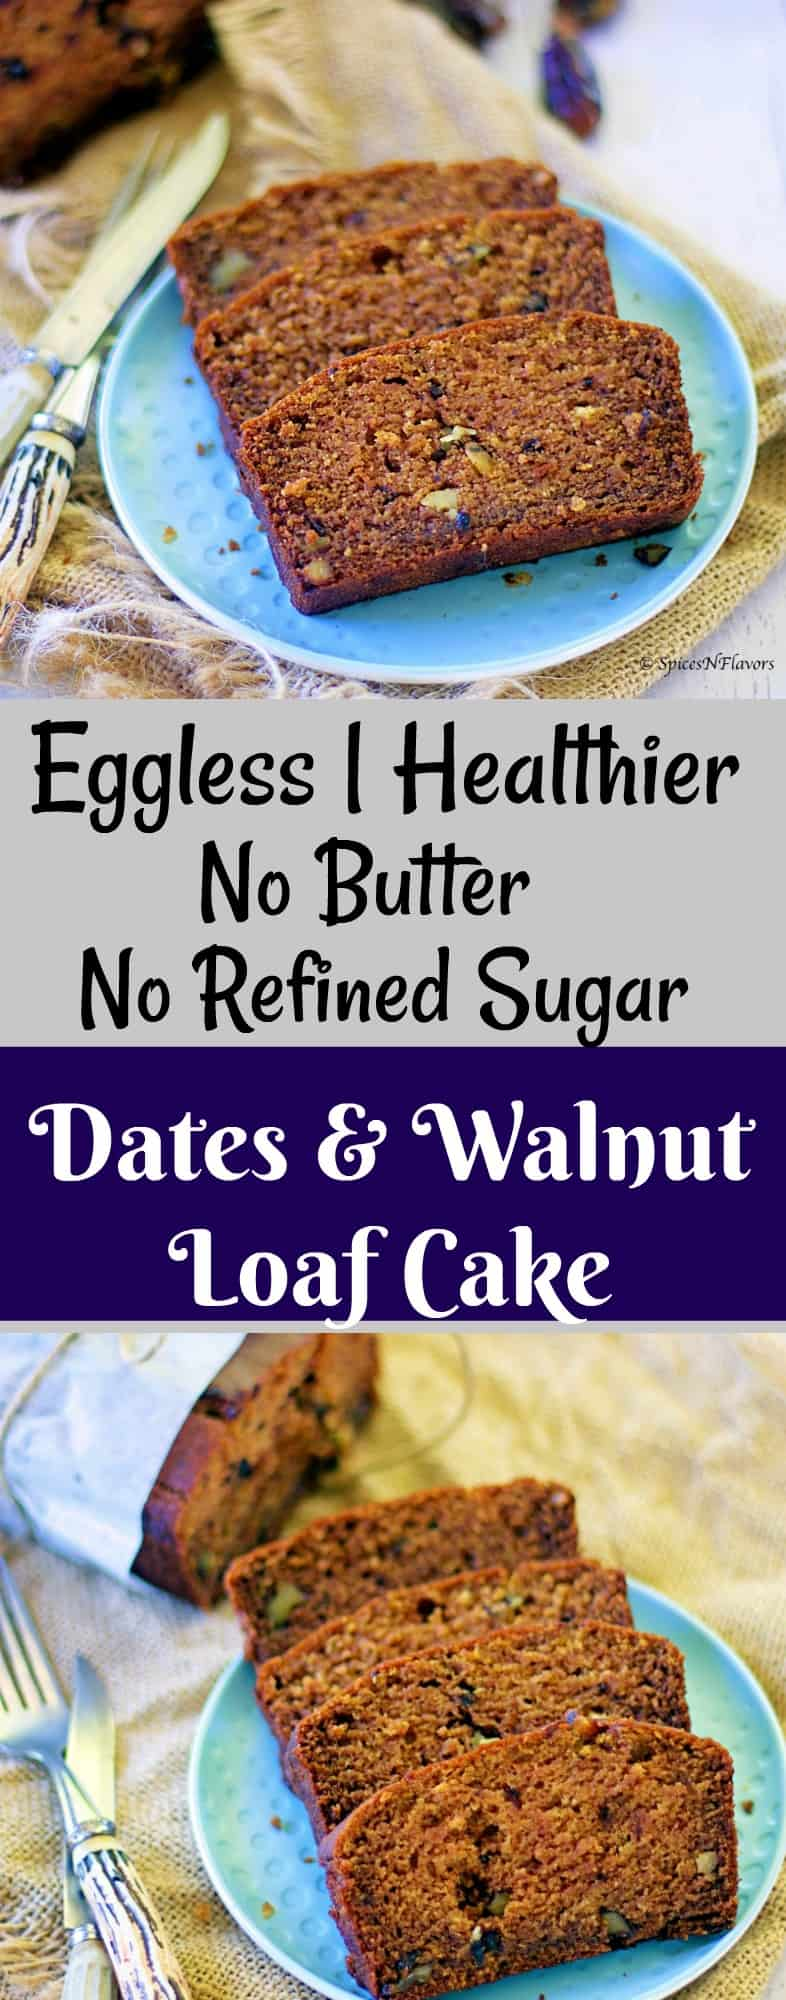 dates and walnut cake, healthy eggless cake, no sugar cake, dates and walnut loaf cake, loaf cake photography eggless loaf cake tea time cakes diabetic friendly cake whole wheat cake